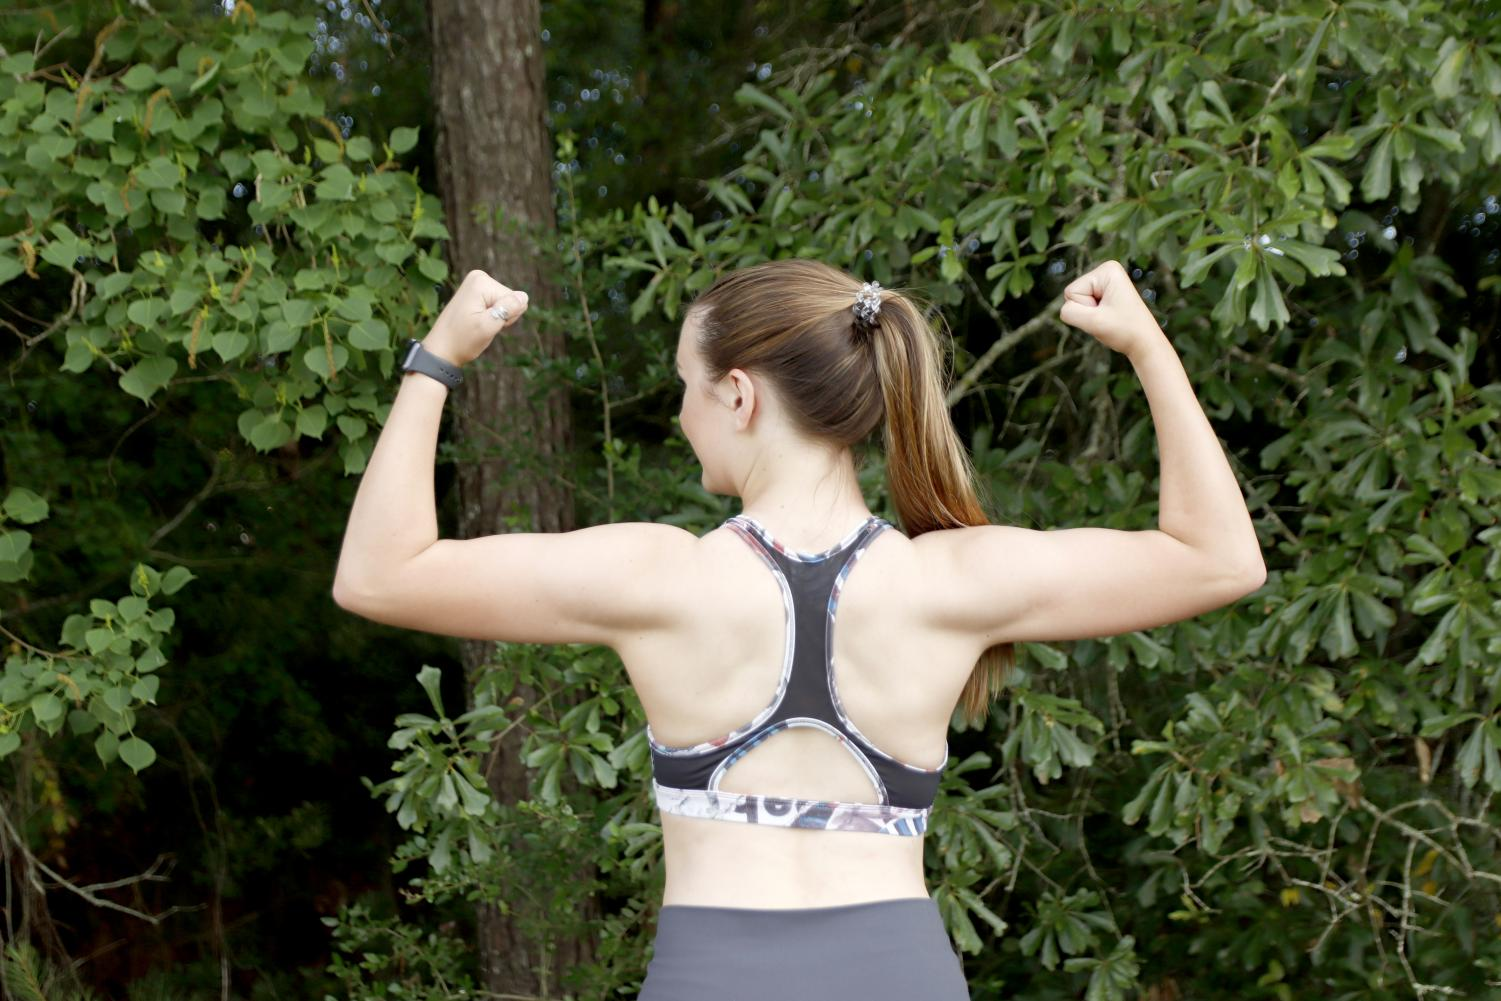 Miss Southeastern Louisiana University Chelsey Blank shows off her muscles during a summer workout. Staying healthy during the summer is more difficult for students due to a less structured schedule according to assistant professor of athletic training Dr. Ryan Green.